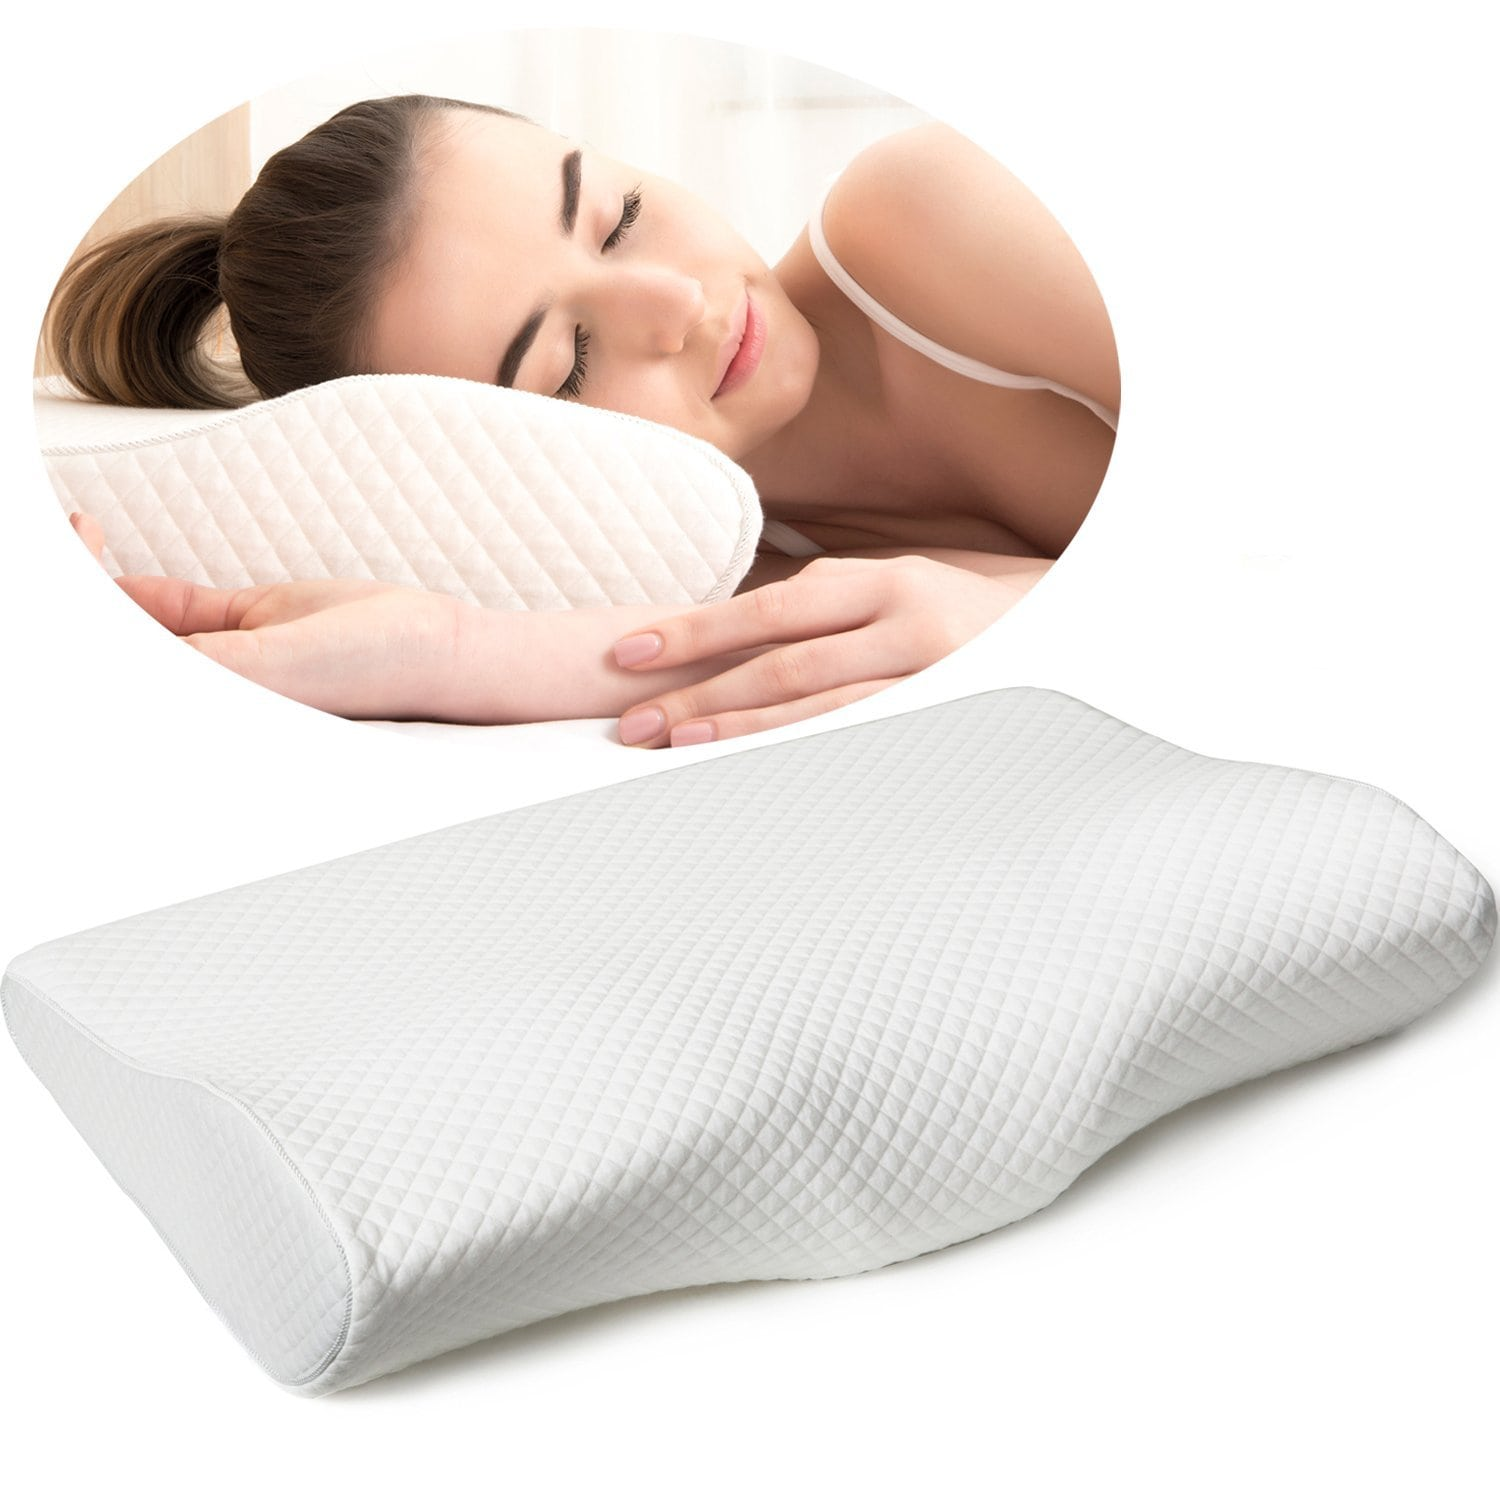 Firm Memory Foam Pillow Cervical Support Pillow Reviews The Best For 2019 Snoremagazine